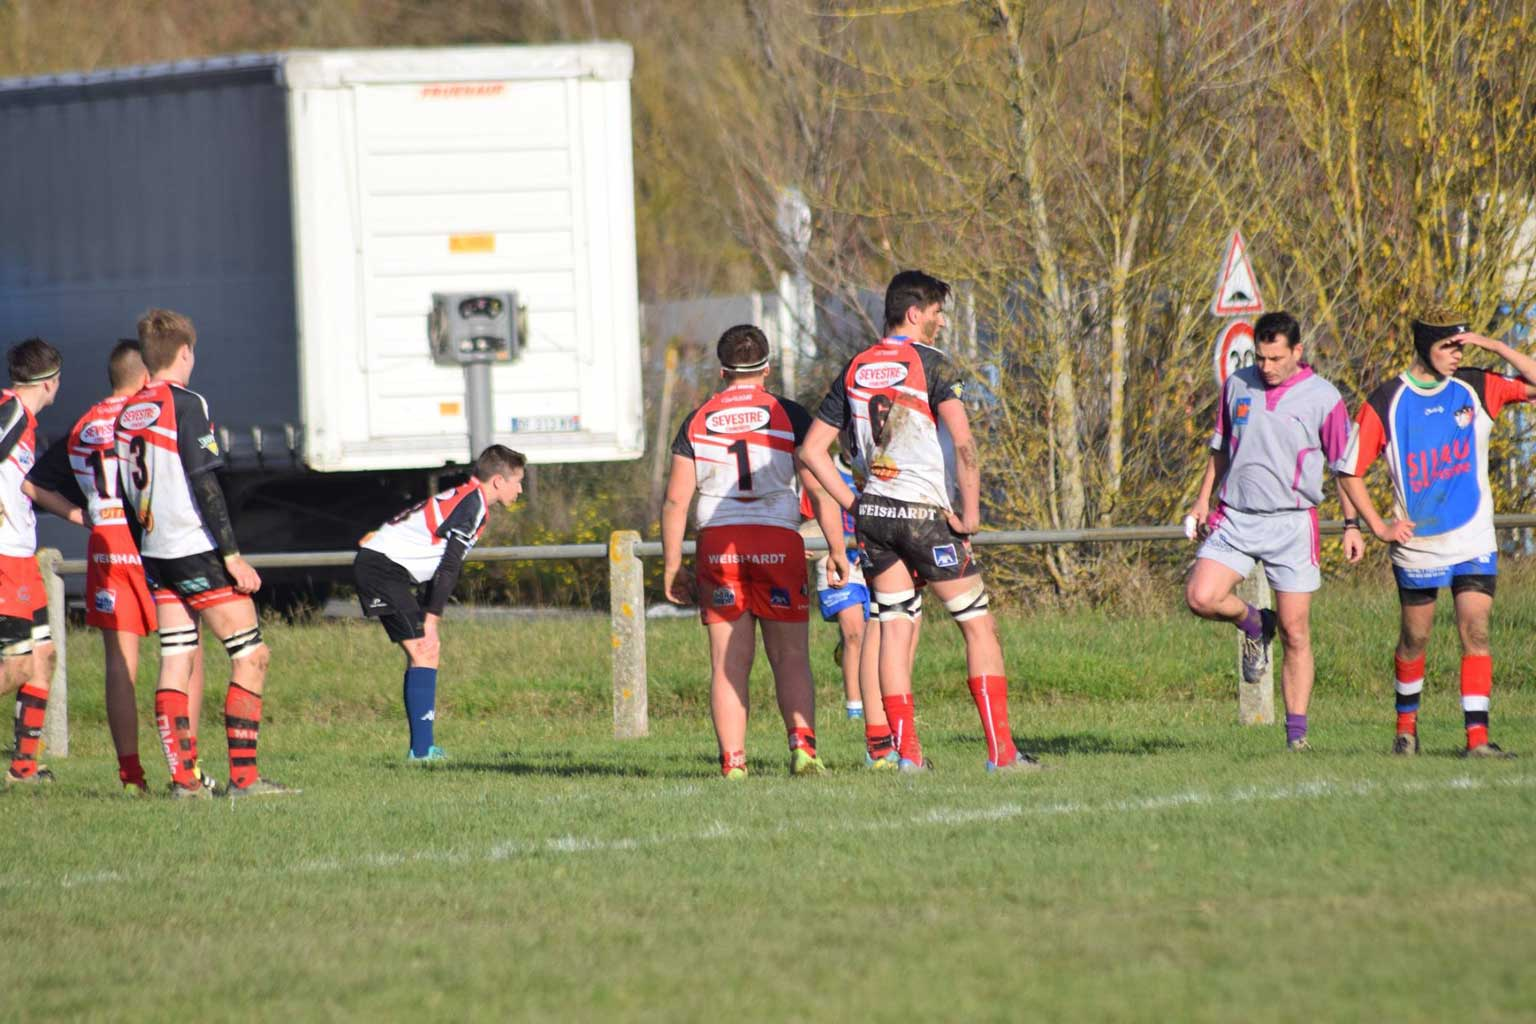 © Maeva Franco - U16 - Graulhet vs Alban/Valence/Lacaune - Photo 12